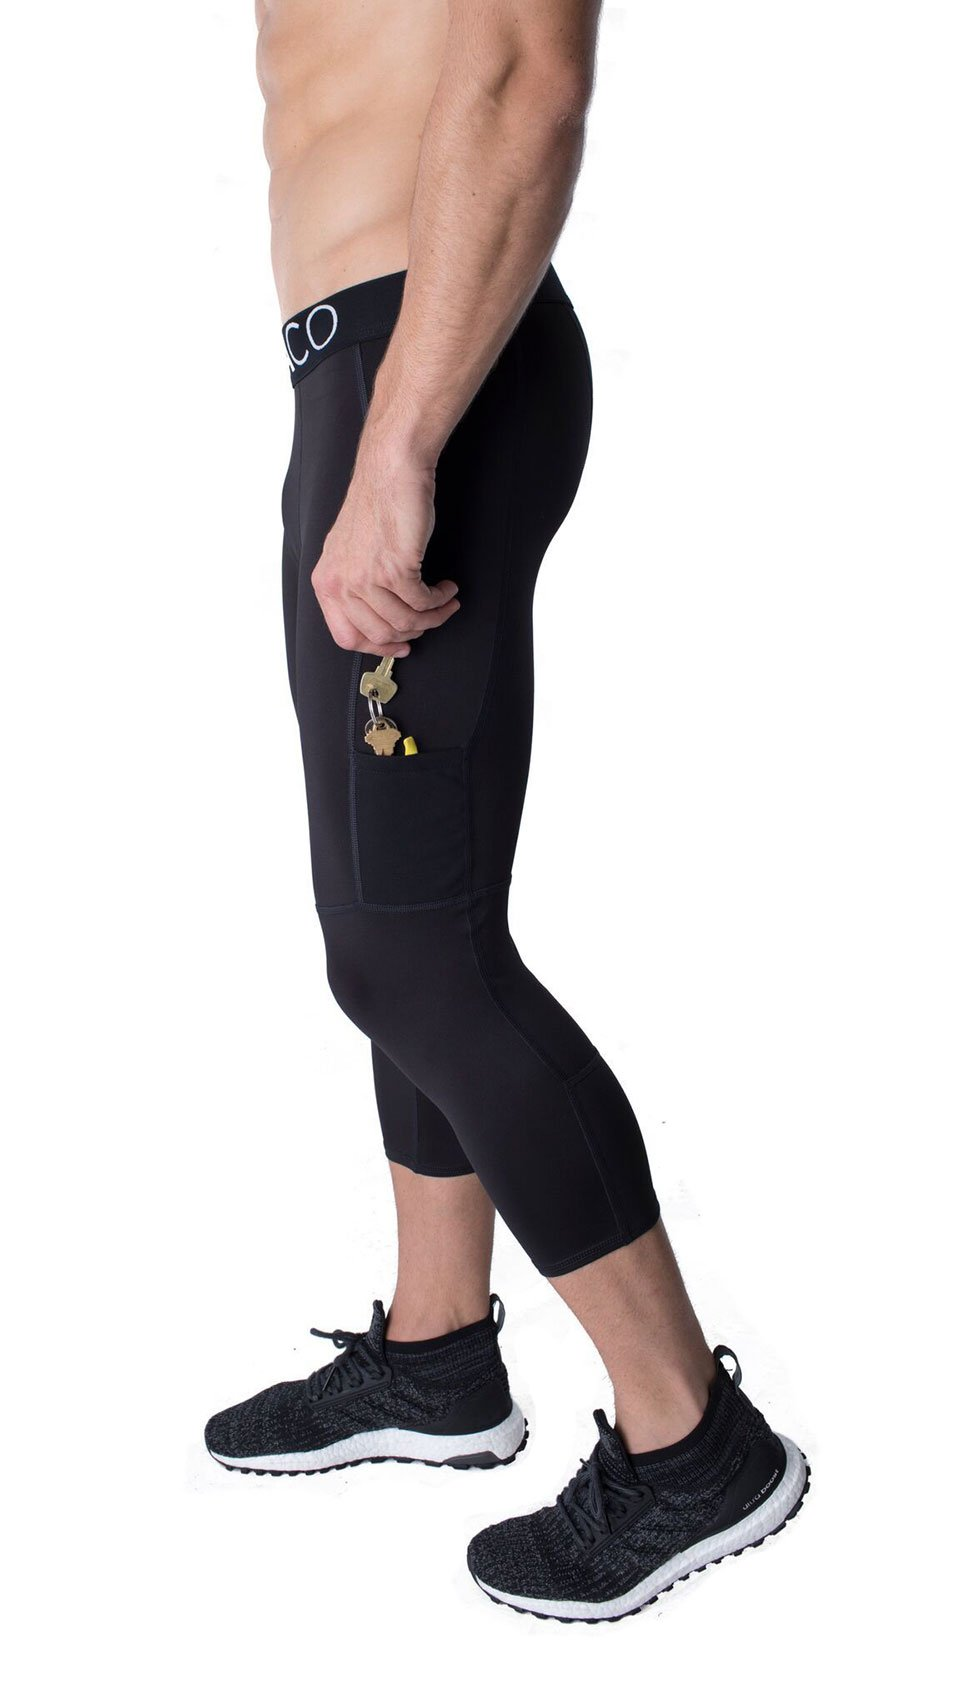 Wolaco Compression Pants